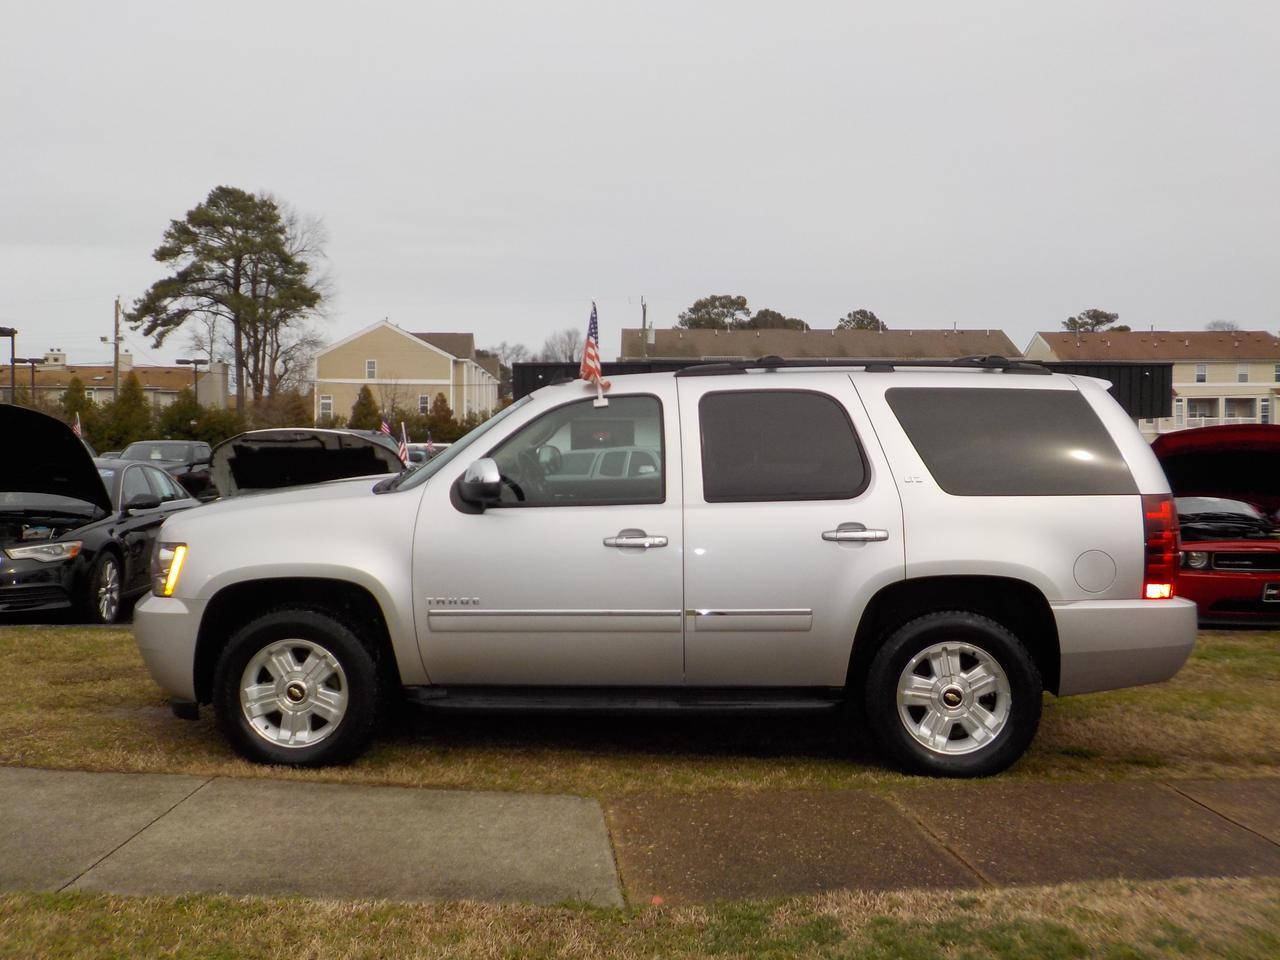 2011 CHEVROLET TAHOE LTZ 4X4, WARRANTY, HEATED & COOLED SEATING, 3RD ROW SEATING, BOSE SOUND SYSTEM, NAVIGATION, TOW! Virginia Beach VA